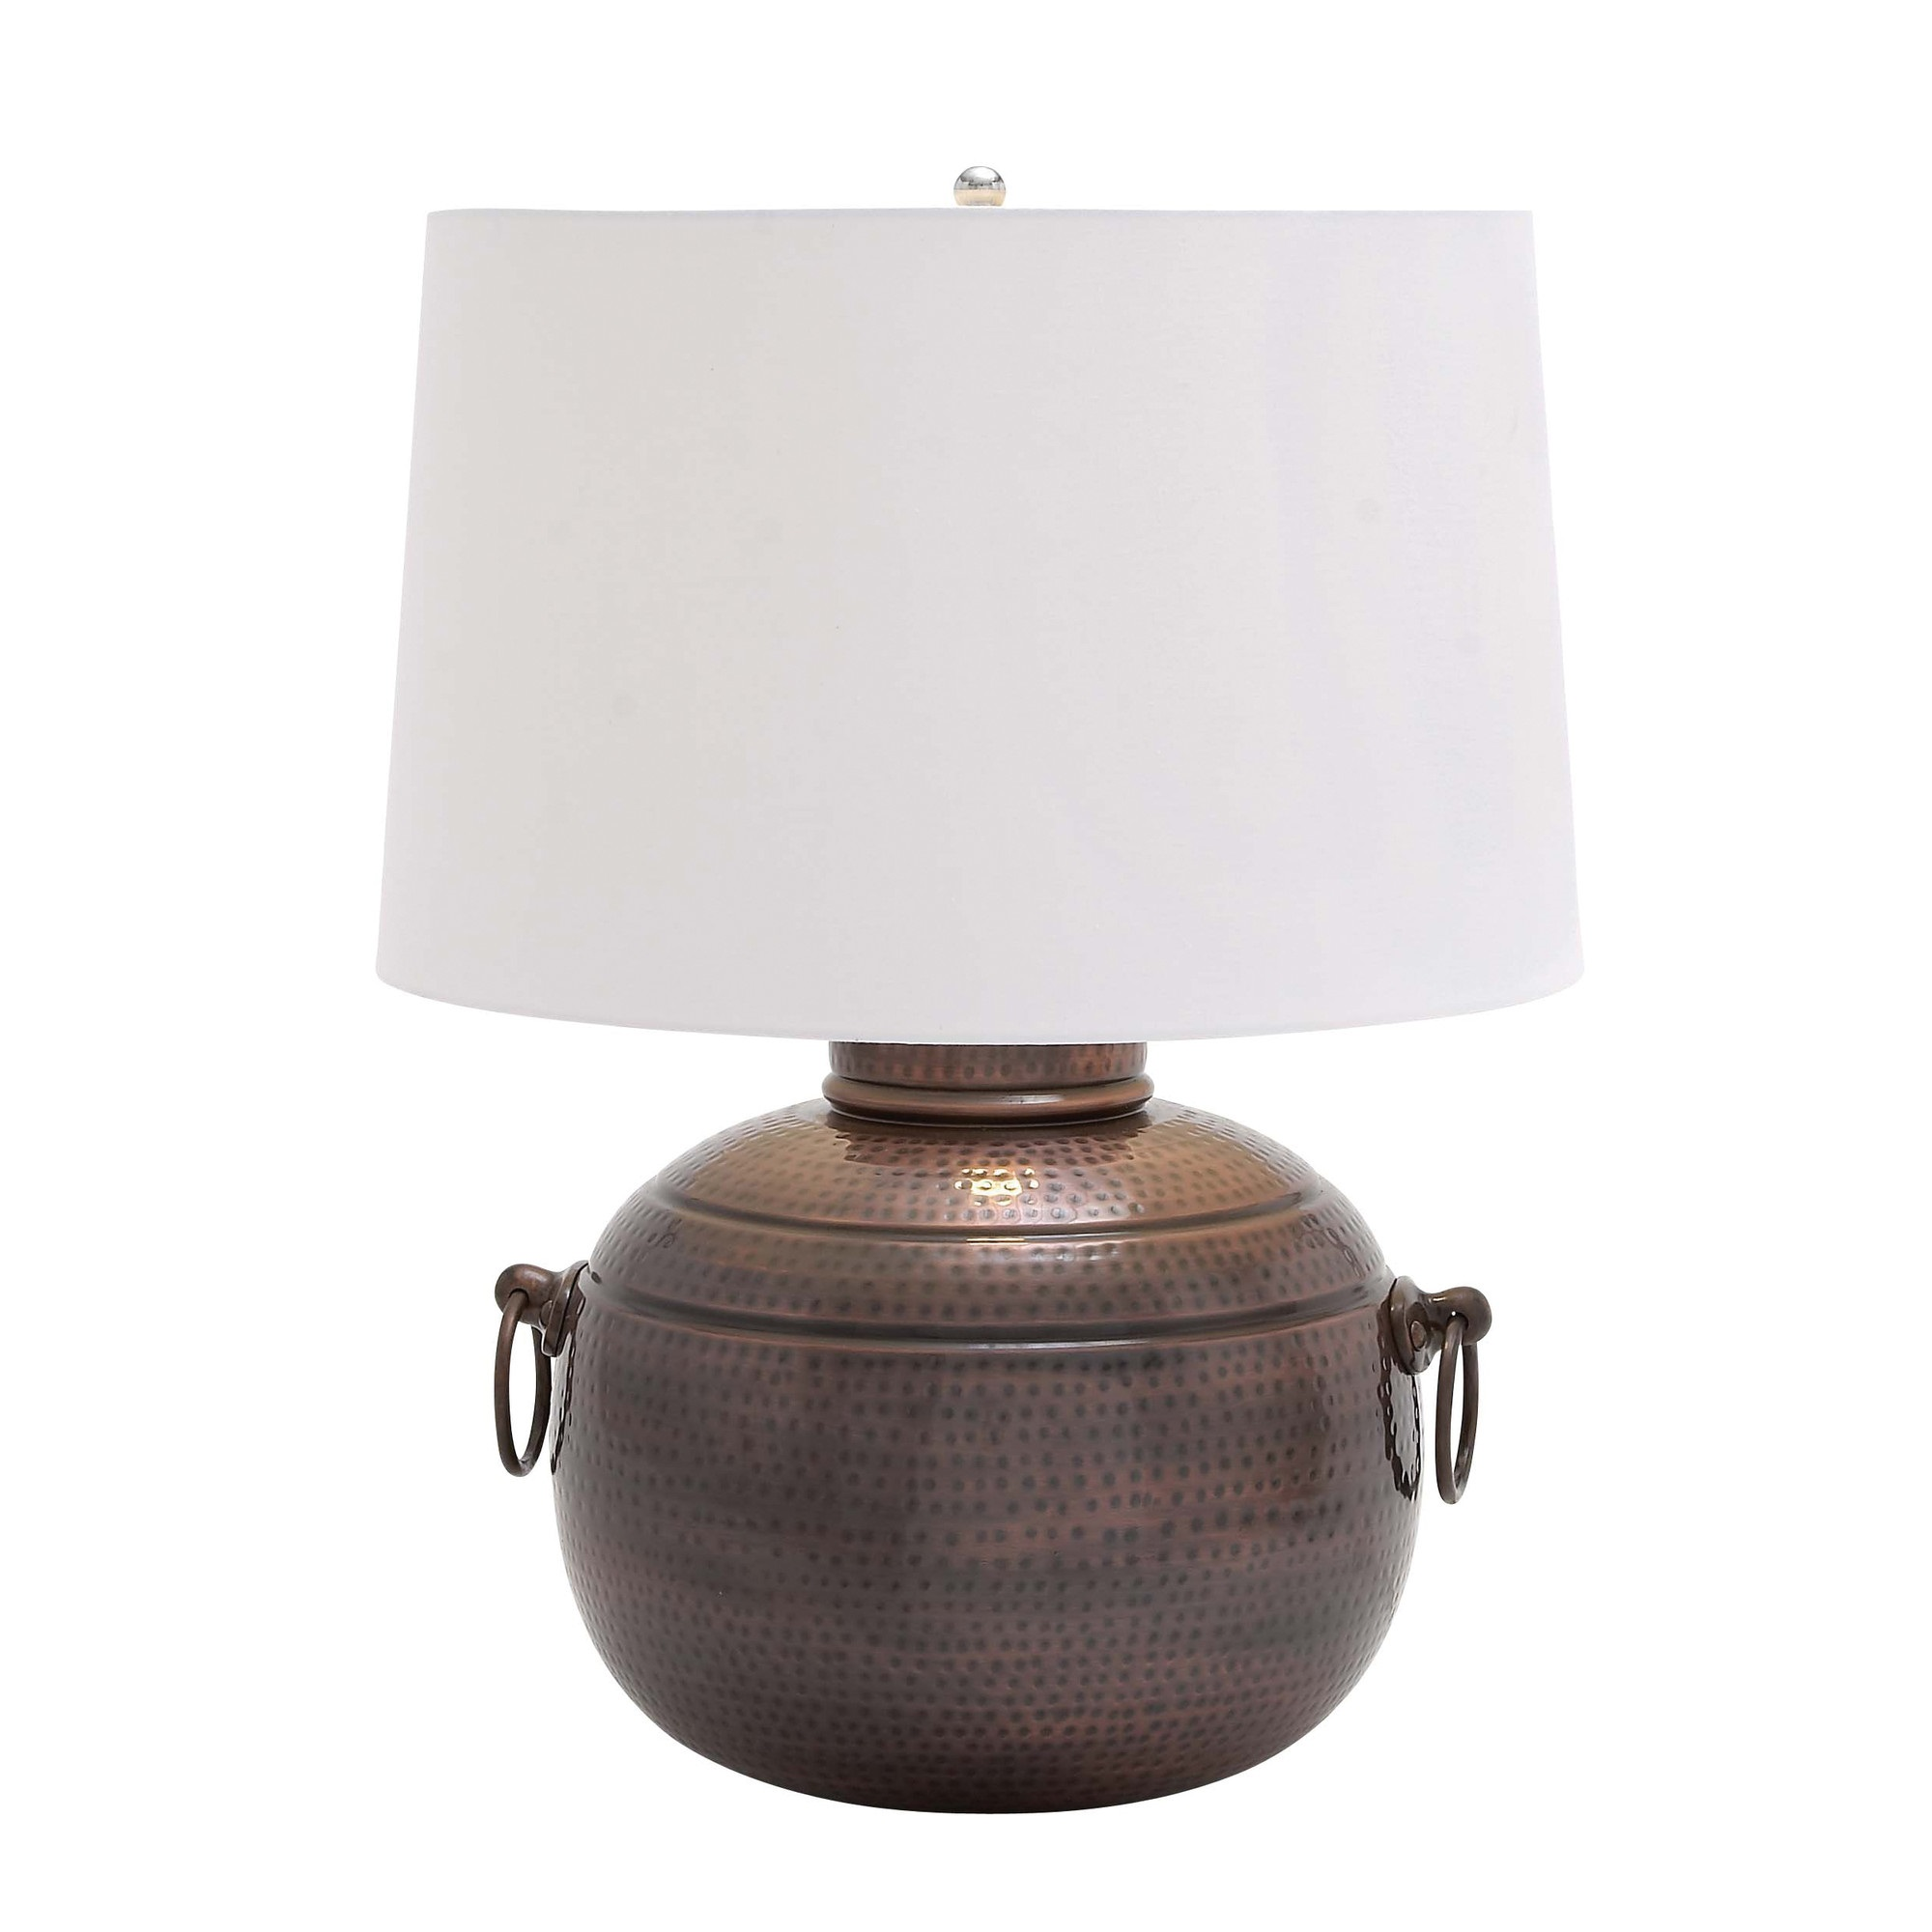 Woodland imports hammered design metal table lamp l brilliant woodland imports hammered design metal table lamp l brilliant source lighting geotapseo Gallery